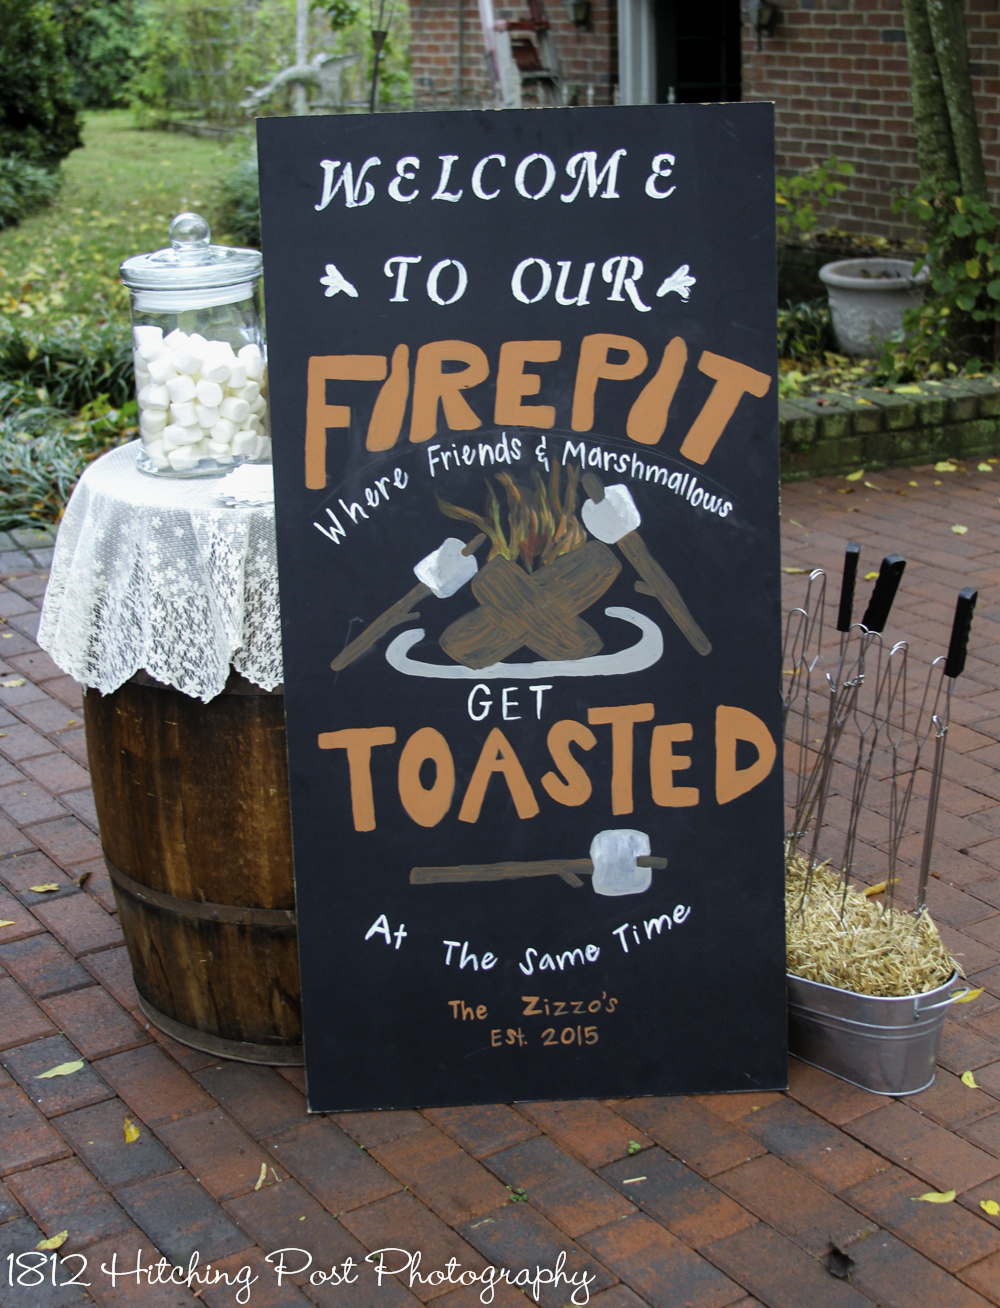 Get toasted sign by firepit